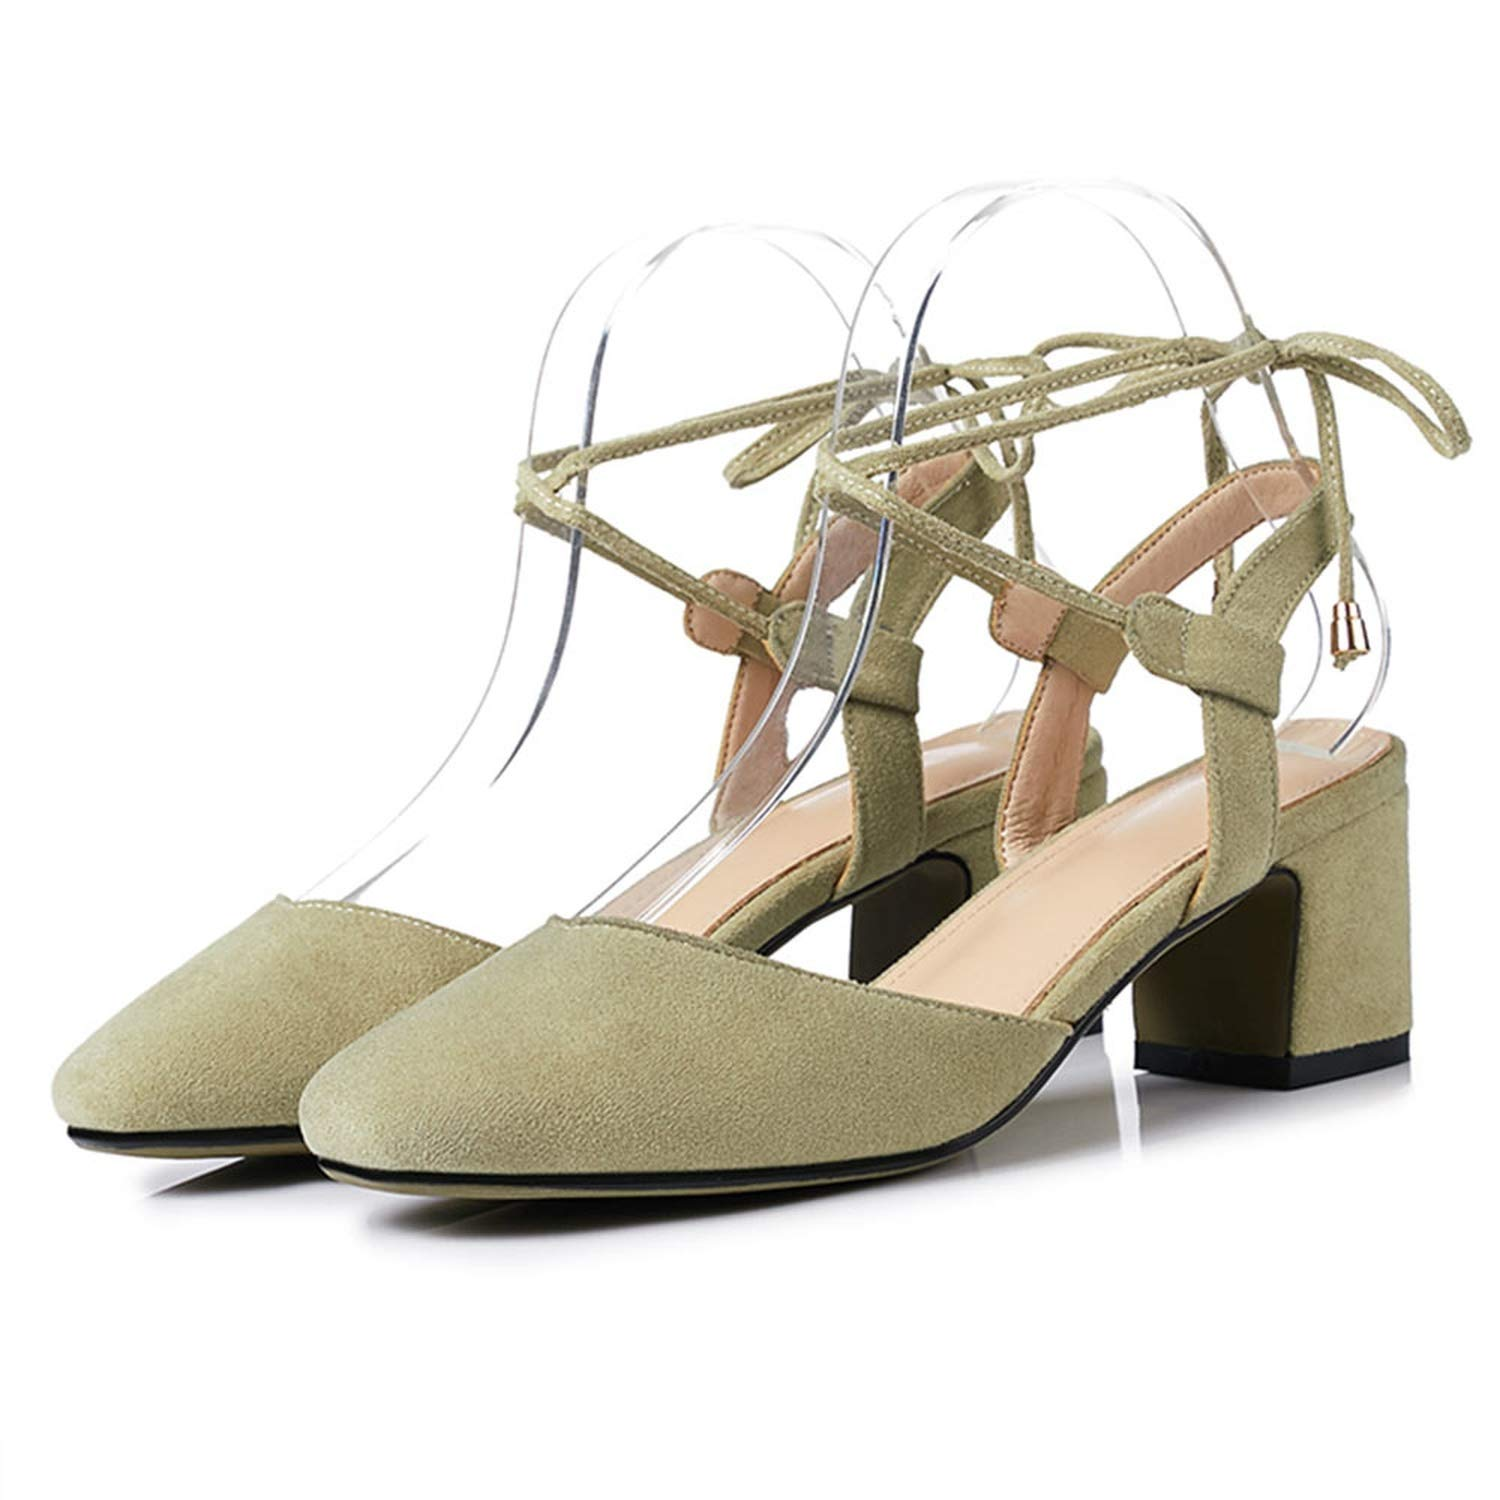 3-201 Green shoes Cover Square Toe Sexy Slingback Summer shoes for Women Sandal